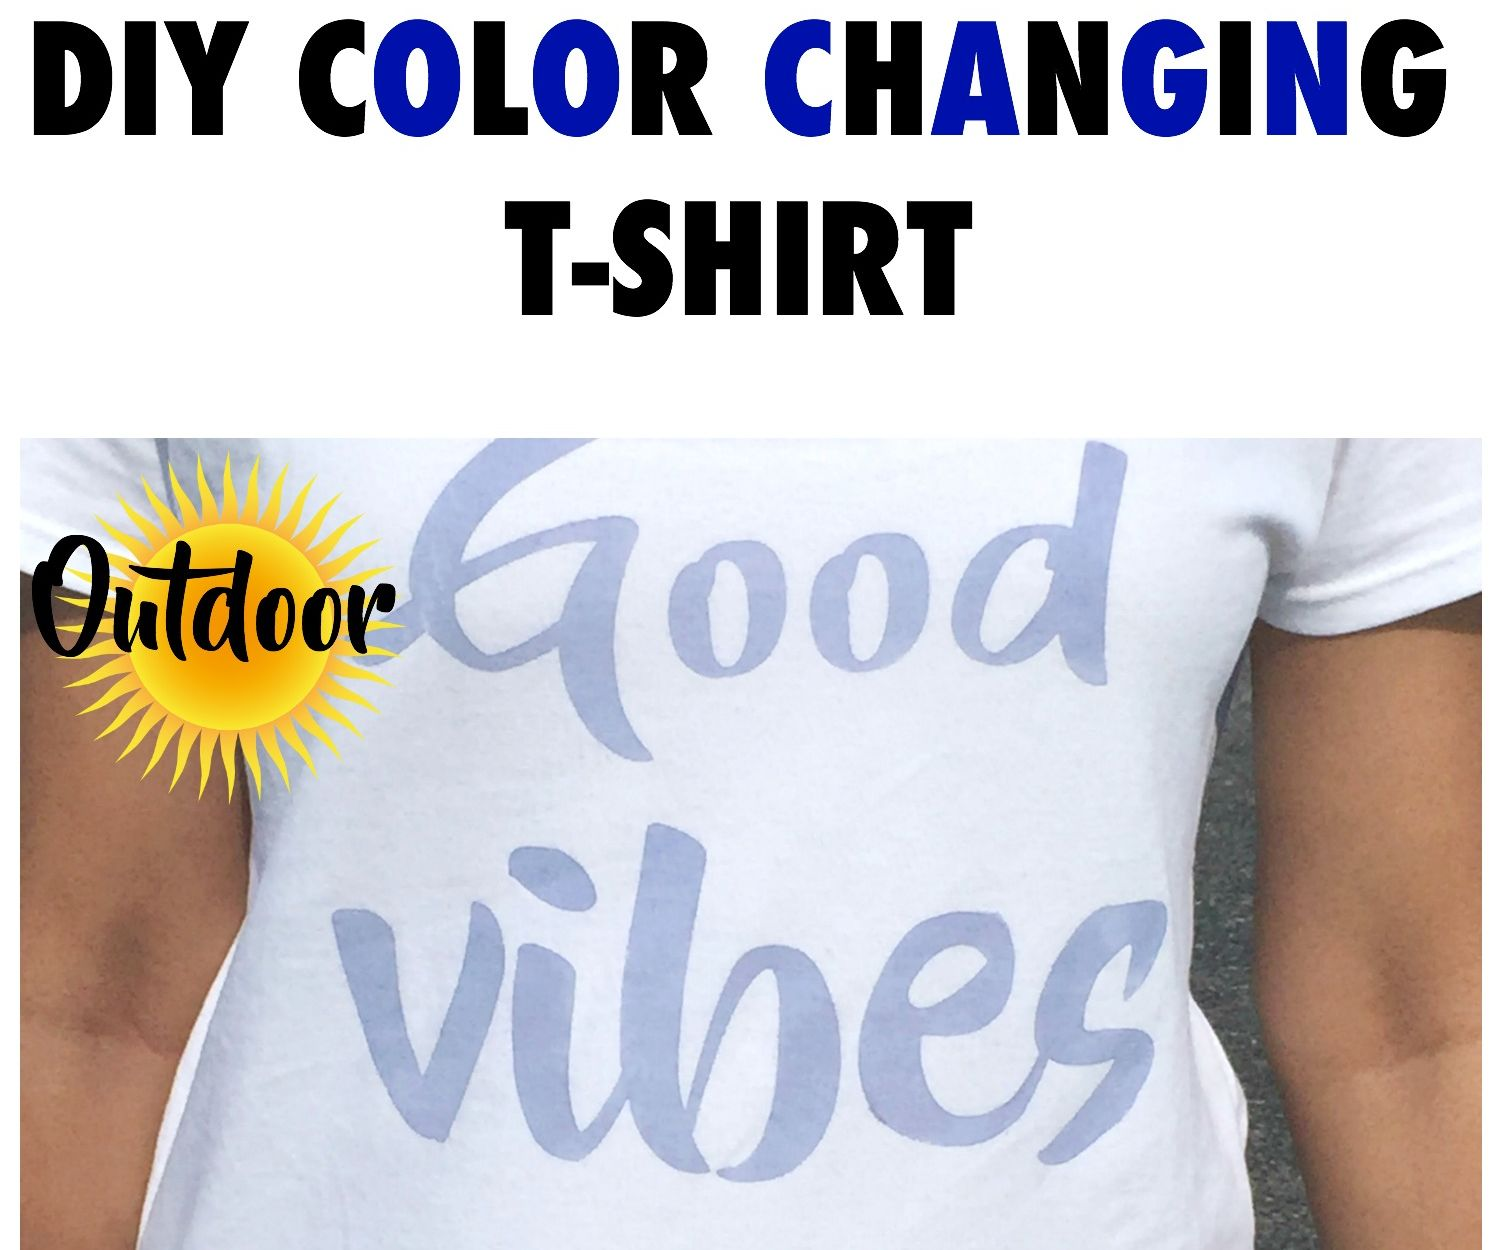 Diy Color Changing T Shirt 7 Steps With Pictures